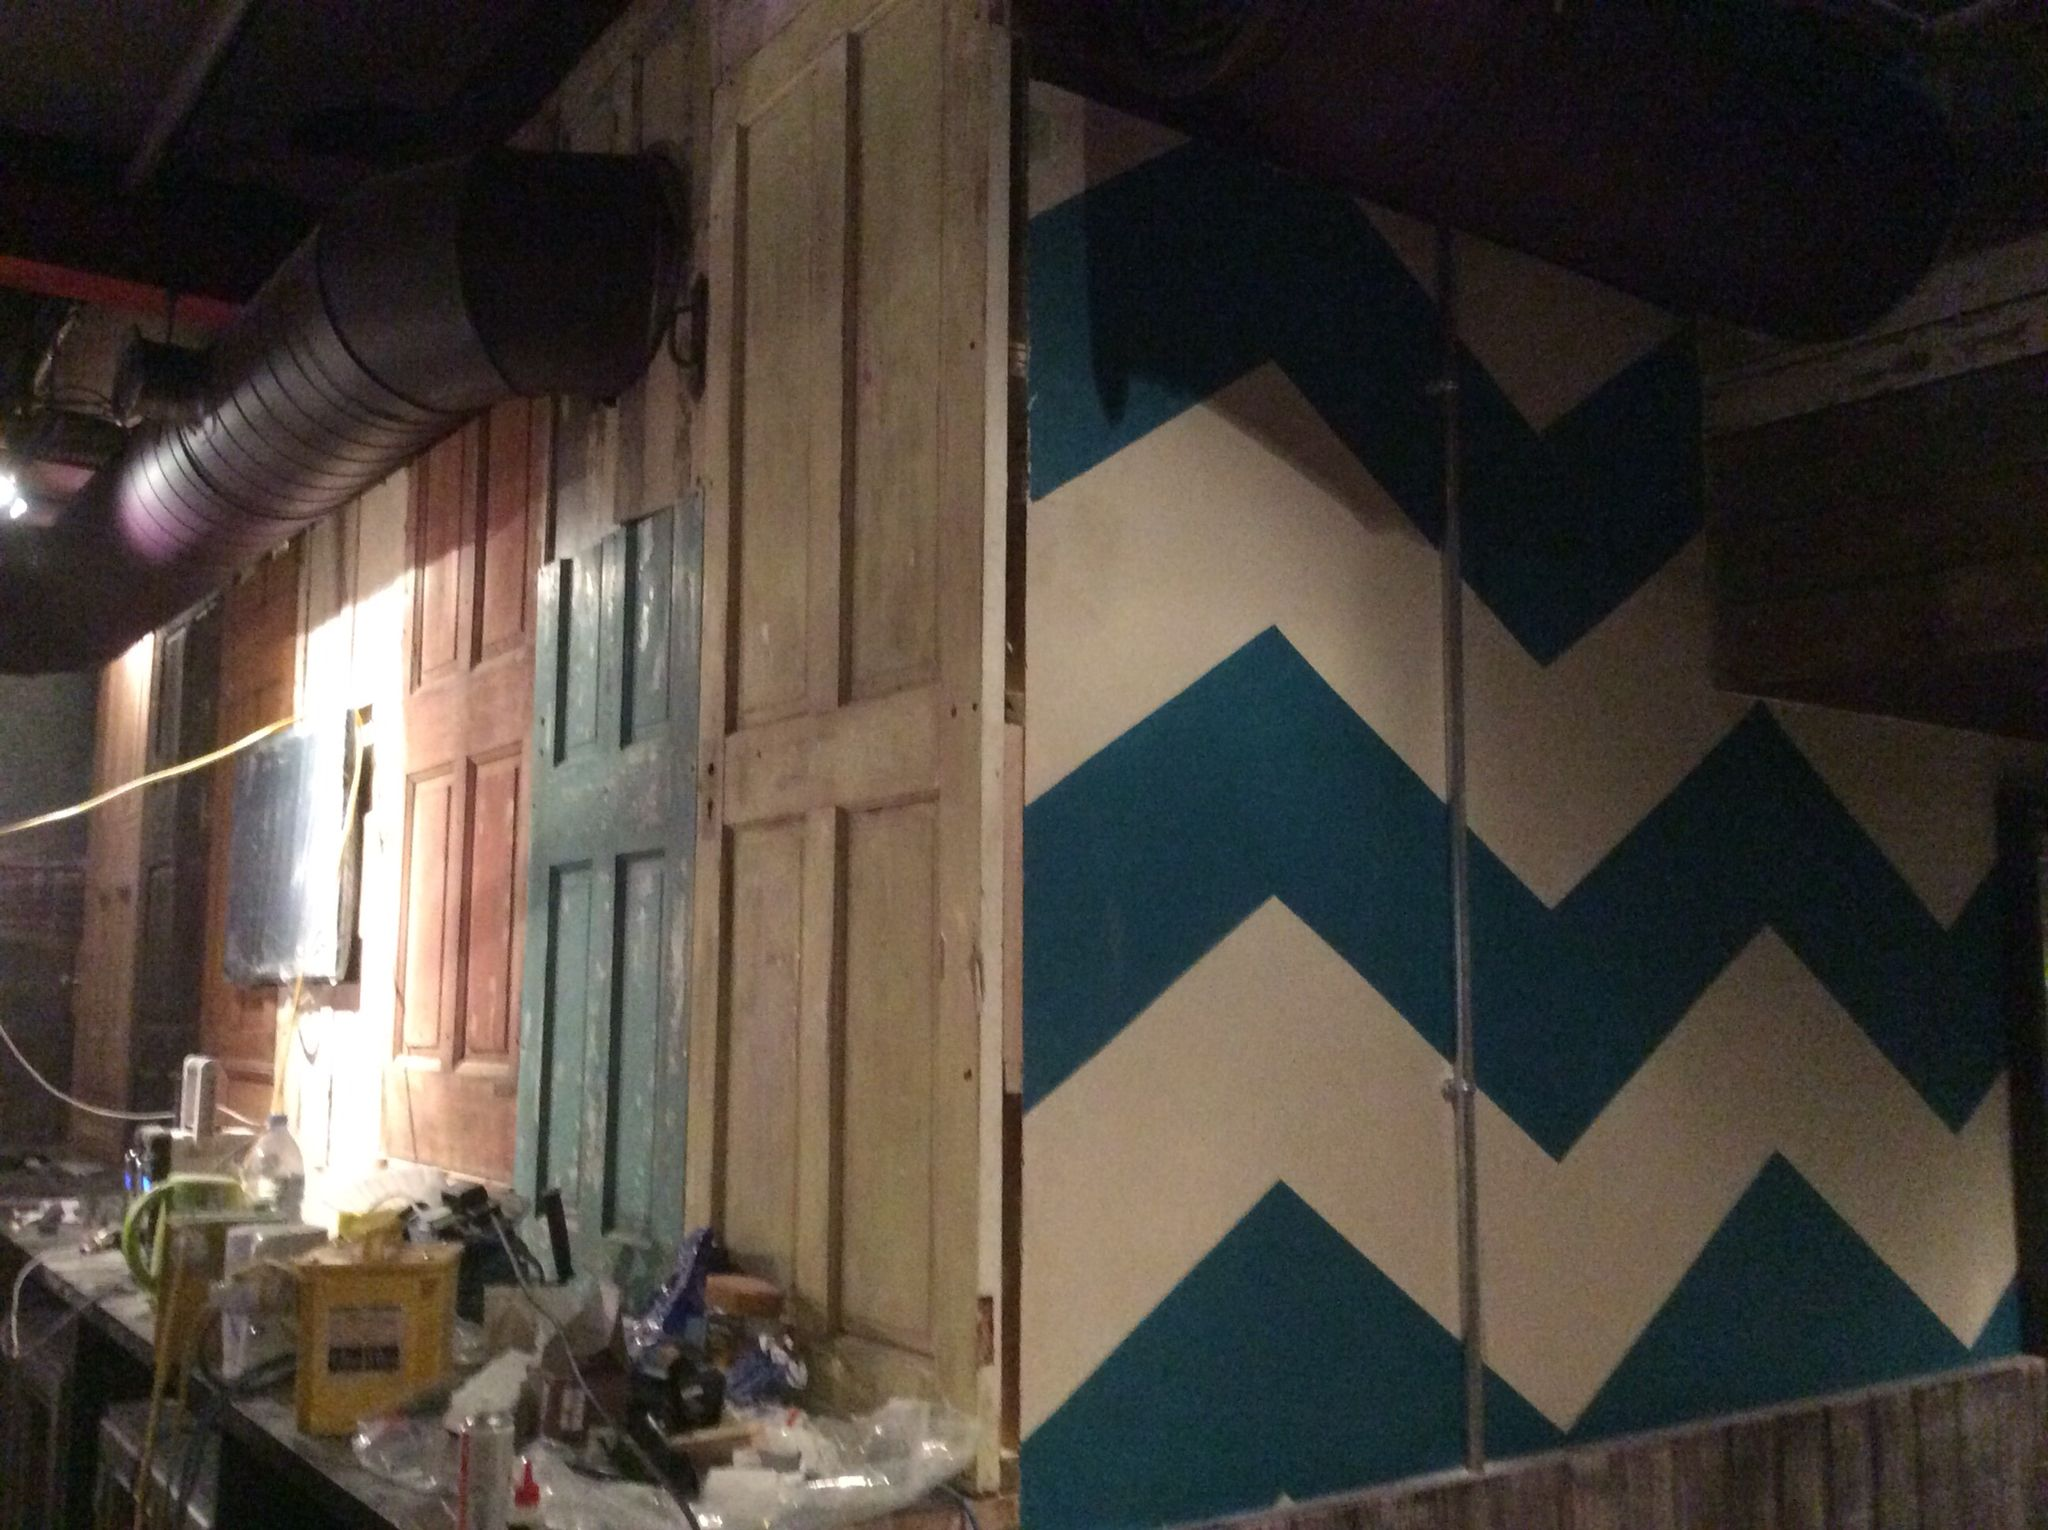 Zigzag Stripe Wall Striped Walls Decorating Services Paint Effects